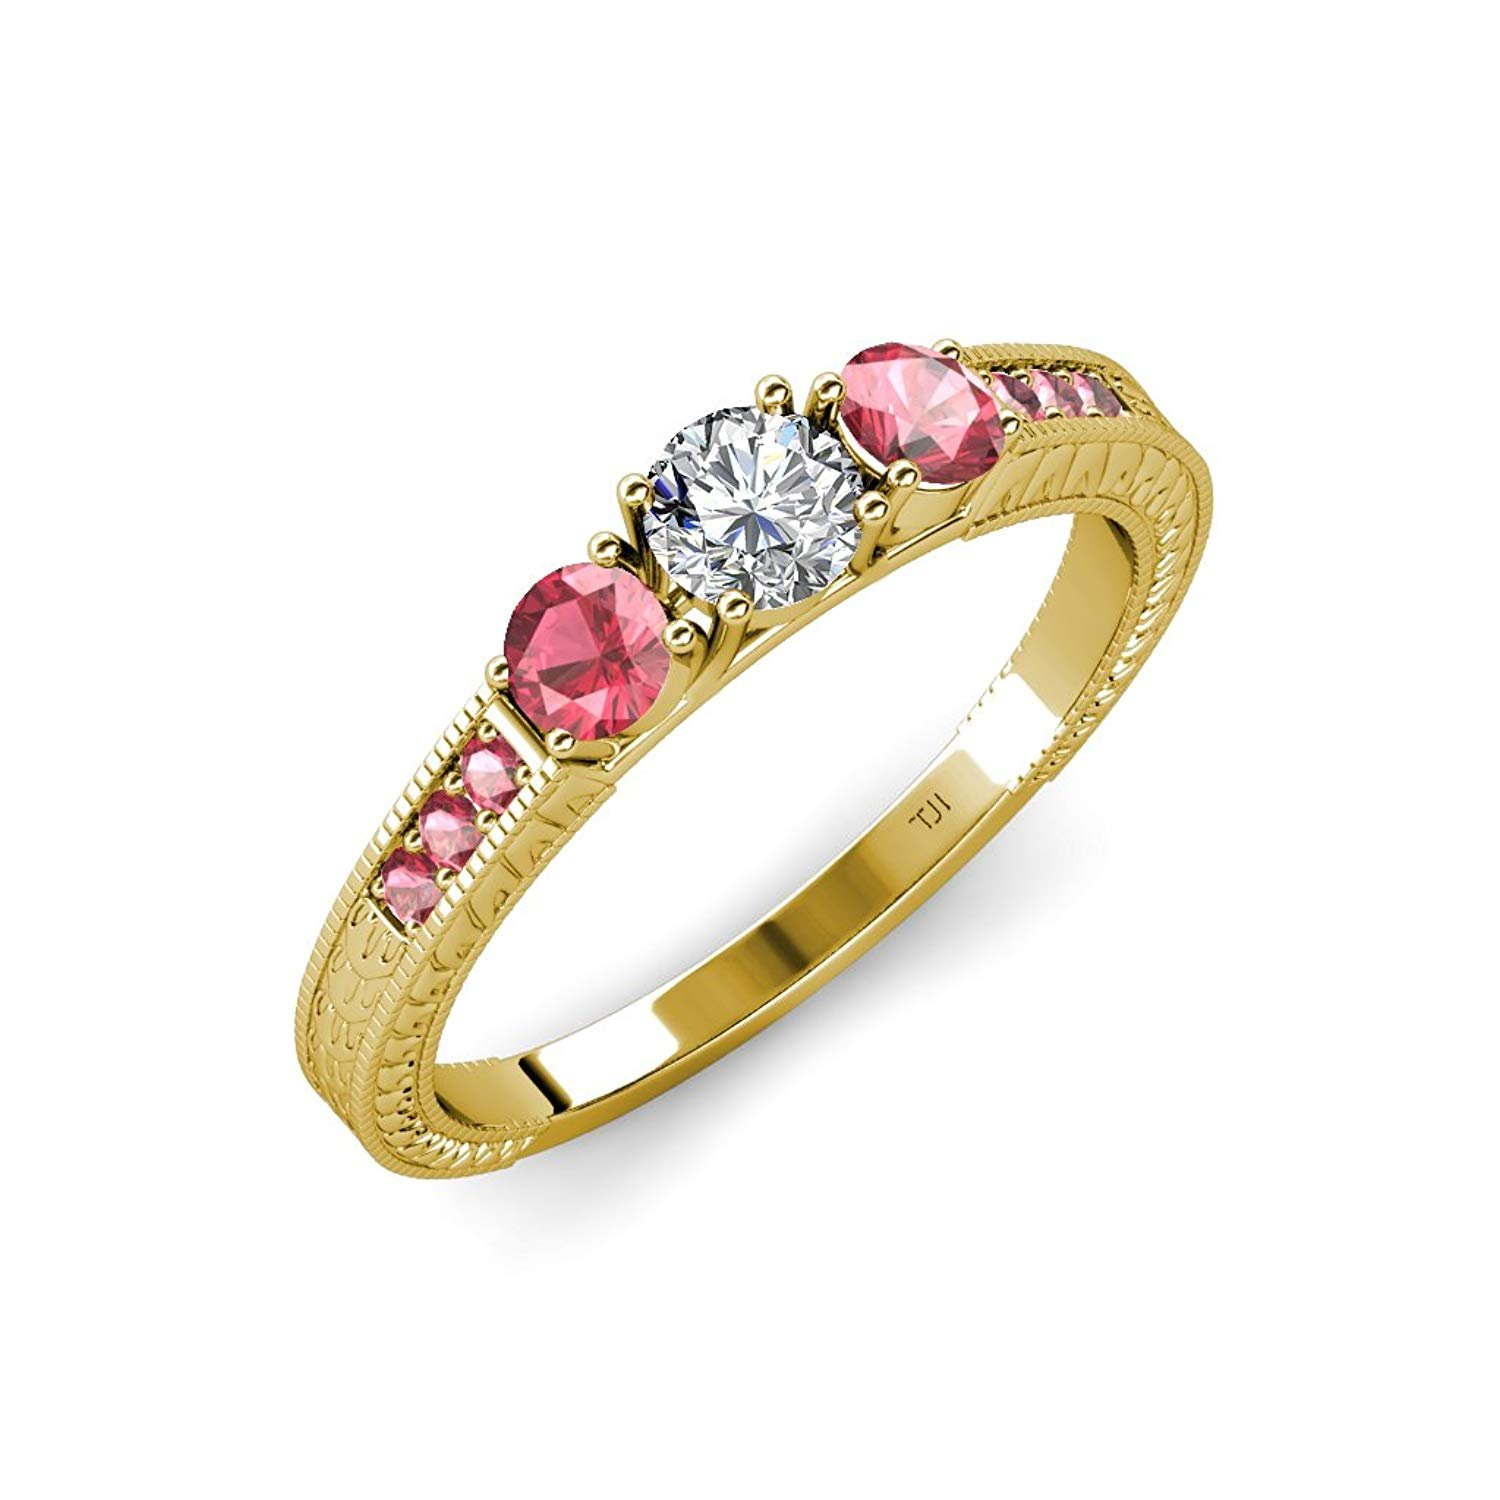 Diamond and Pink Tourmaline 3 Stone Ring with Side Pink Tourmaline 0.83 ct tw in 14K Yellow Gold.size 6.5 by TriJewels